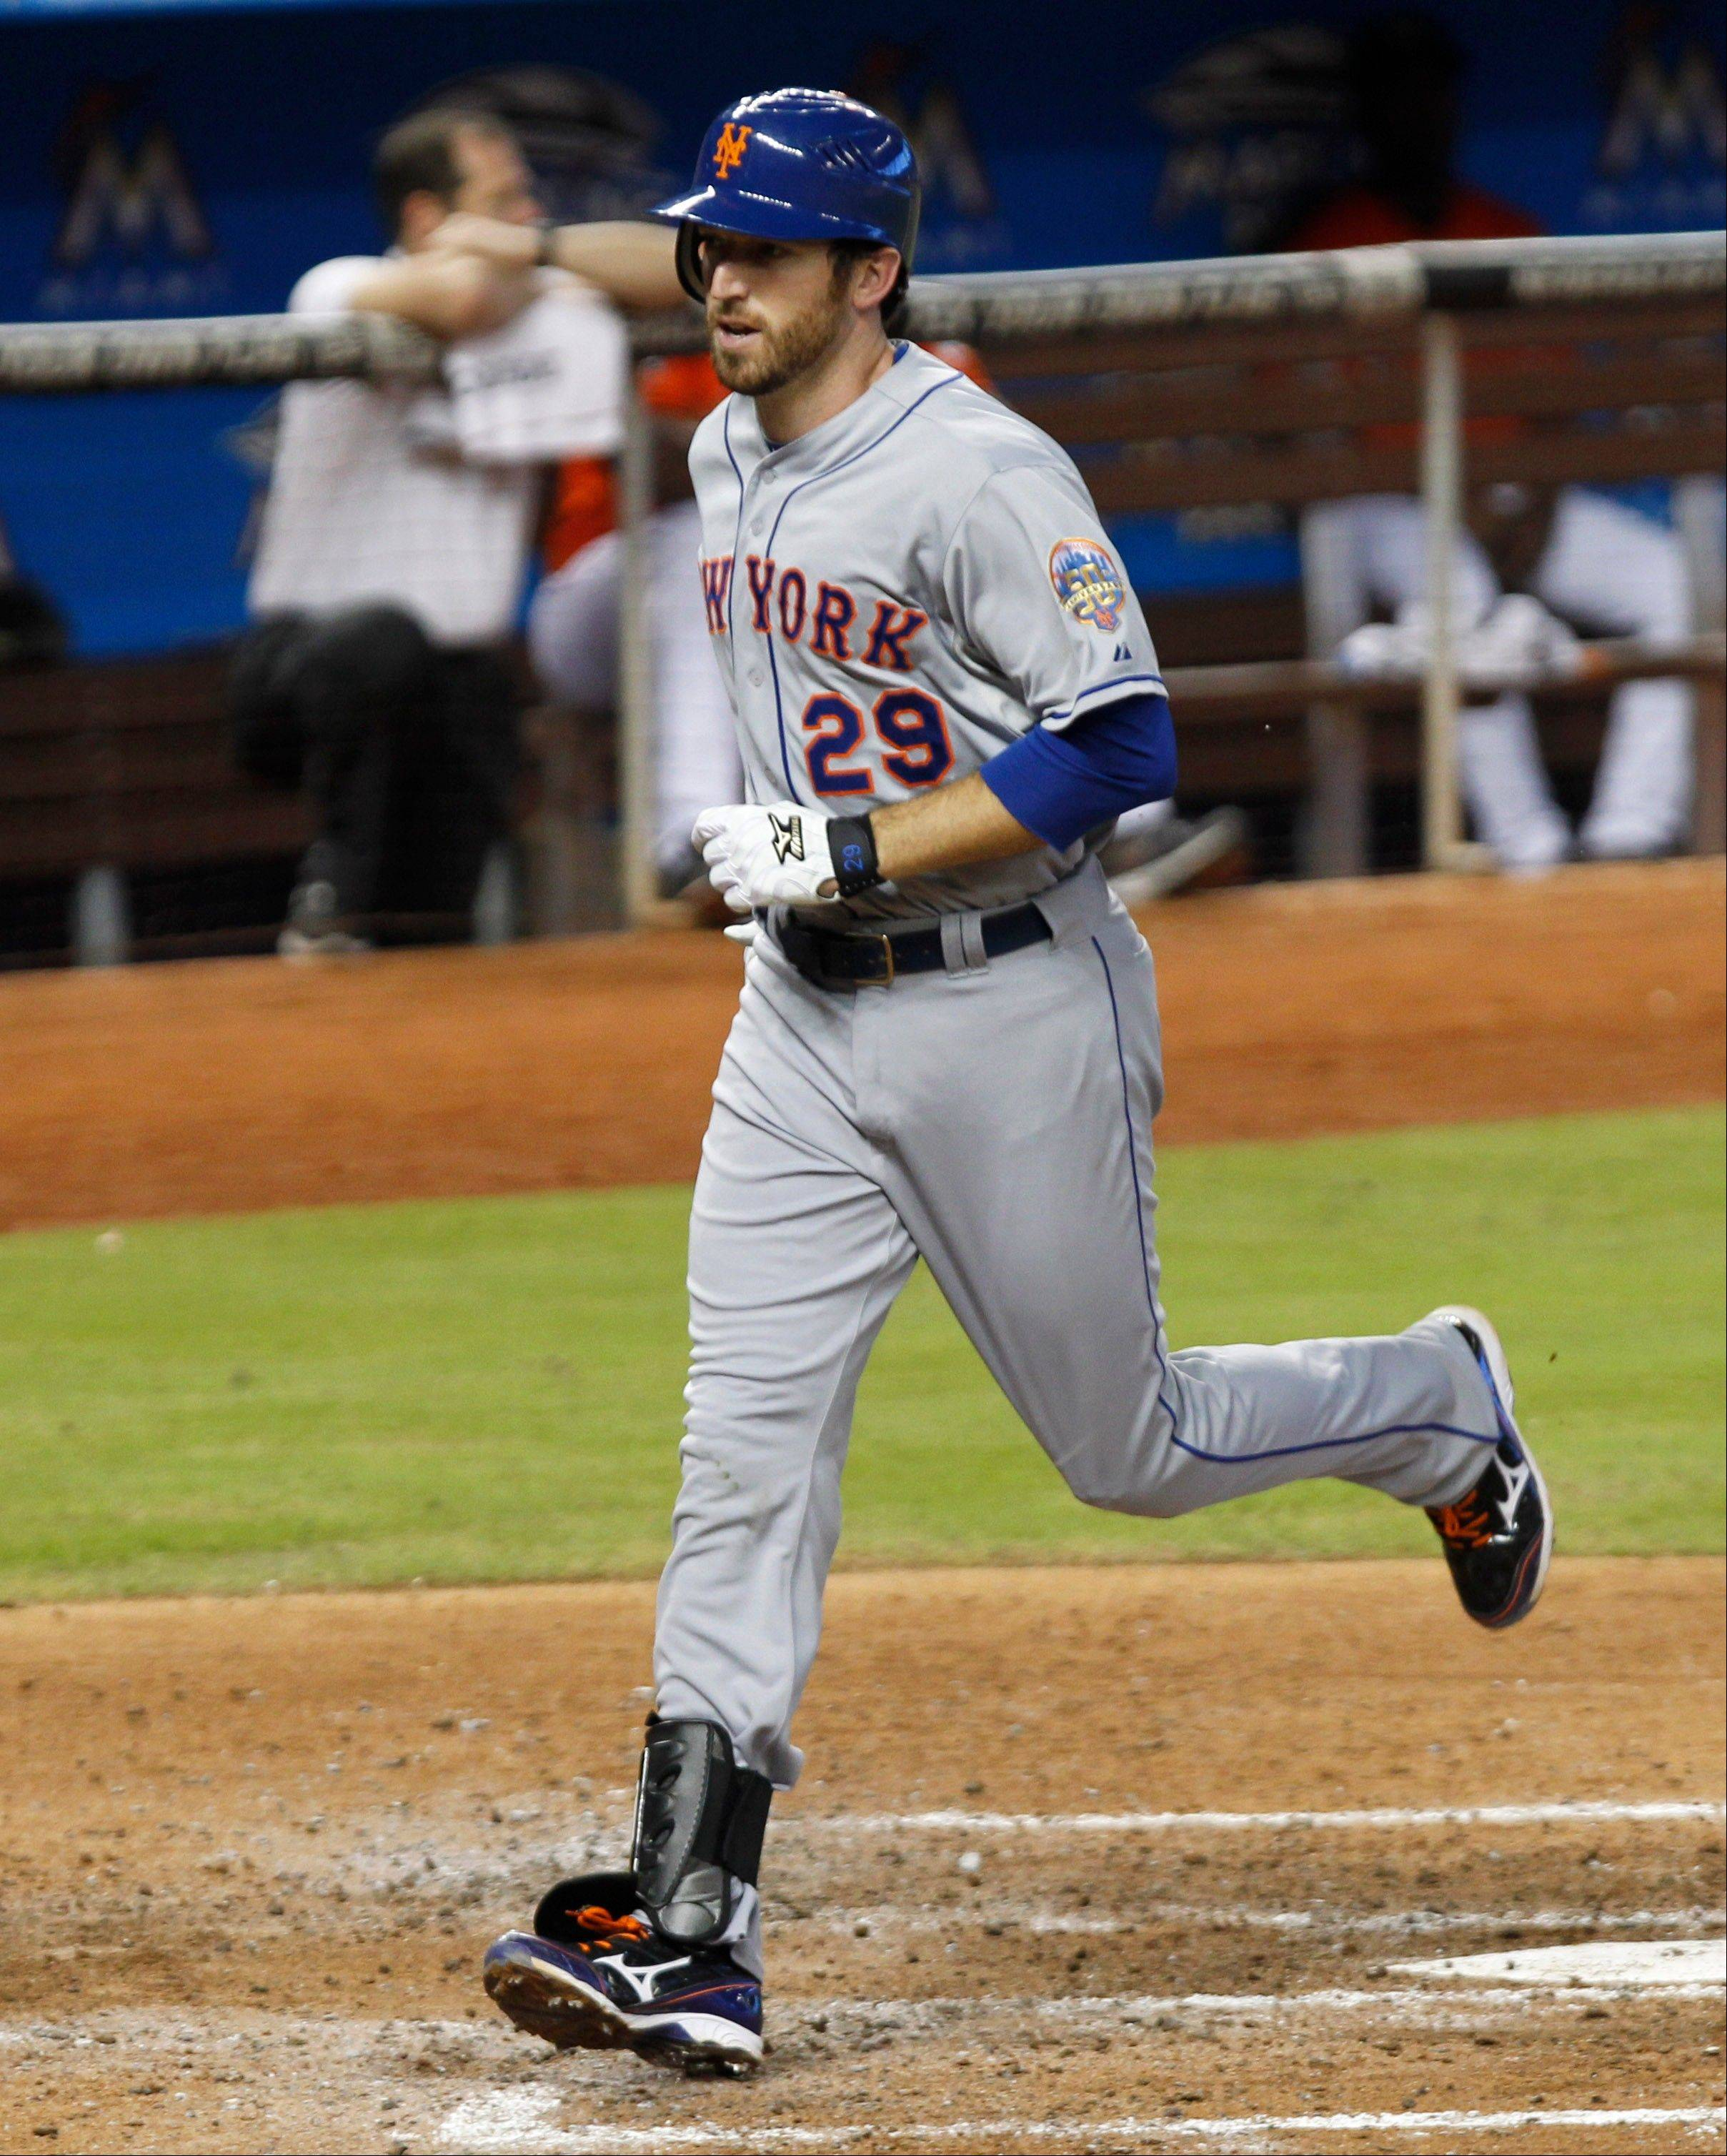 The Mets� Ike Davis crosses home plate after hitting a solo home run against the Marlins in the sixth inning Wednesday in Miami.